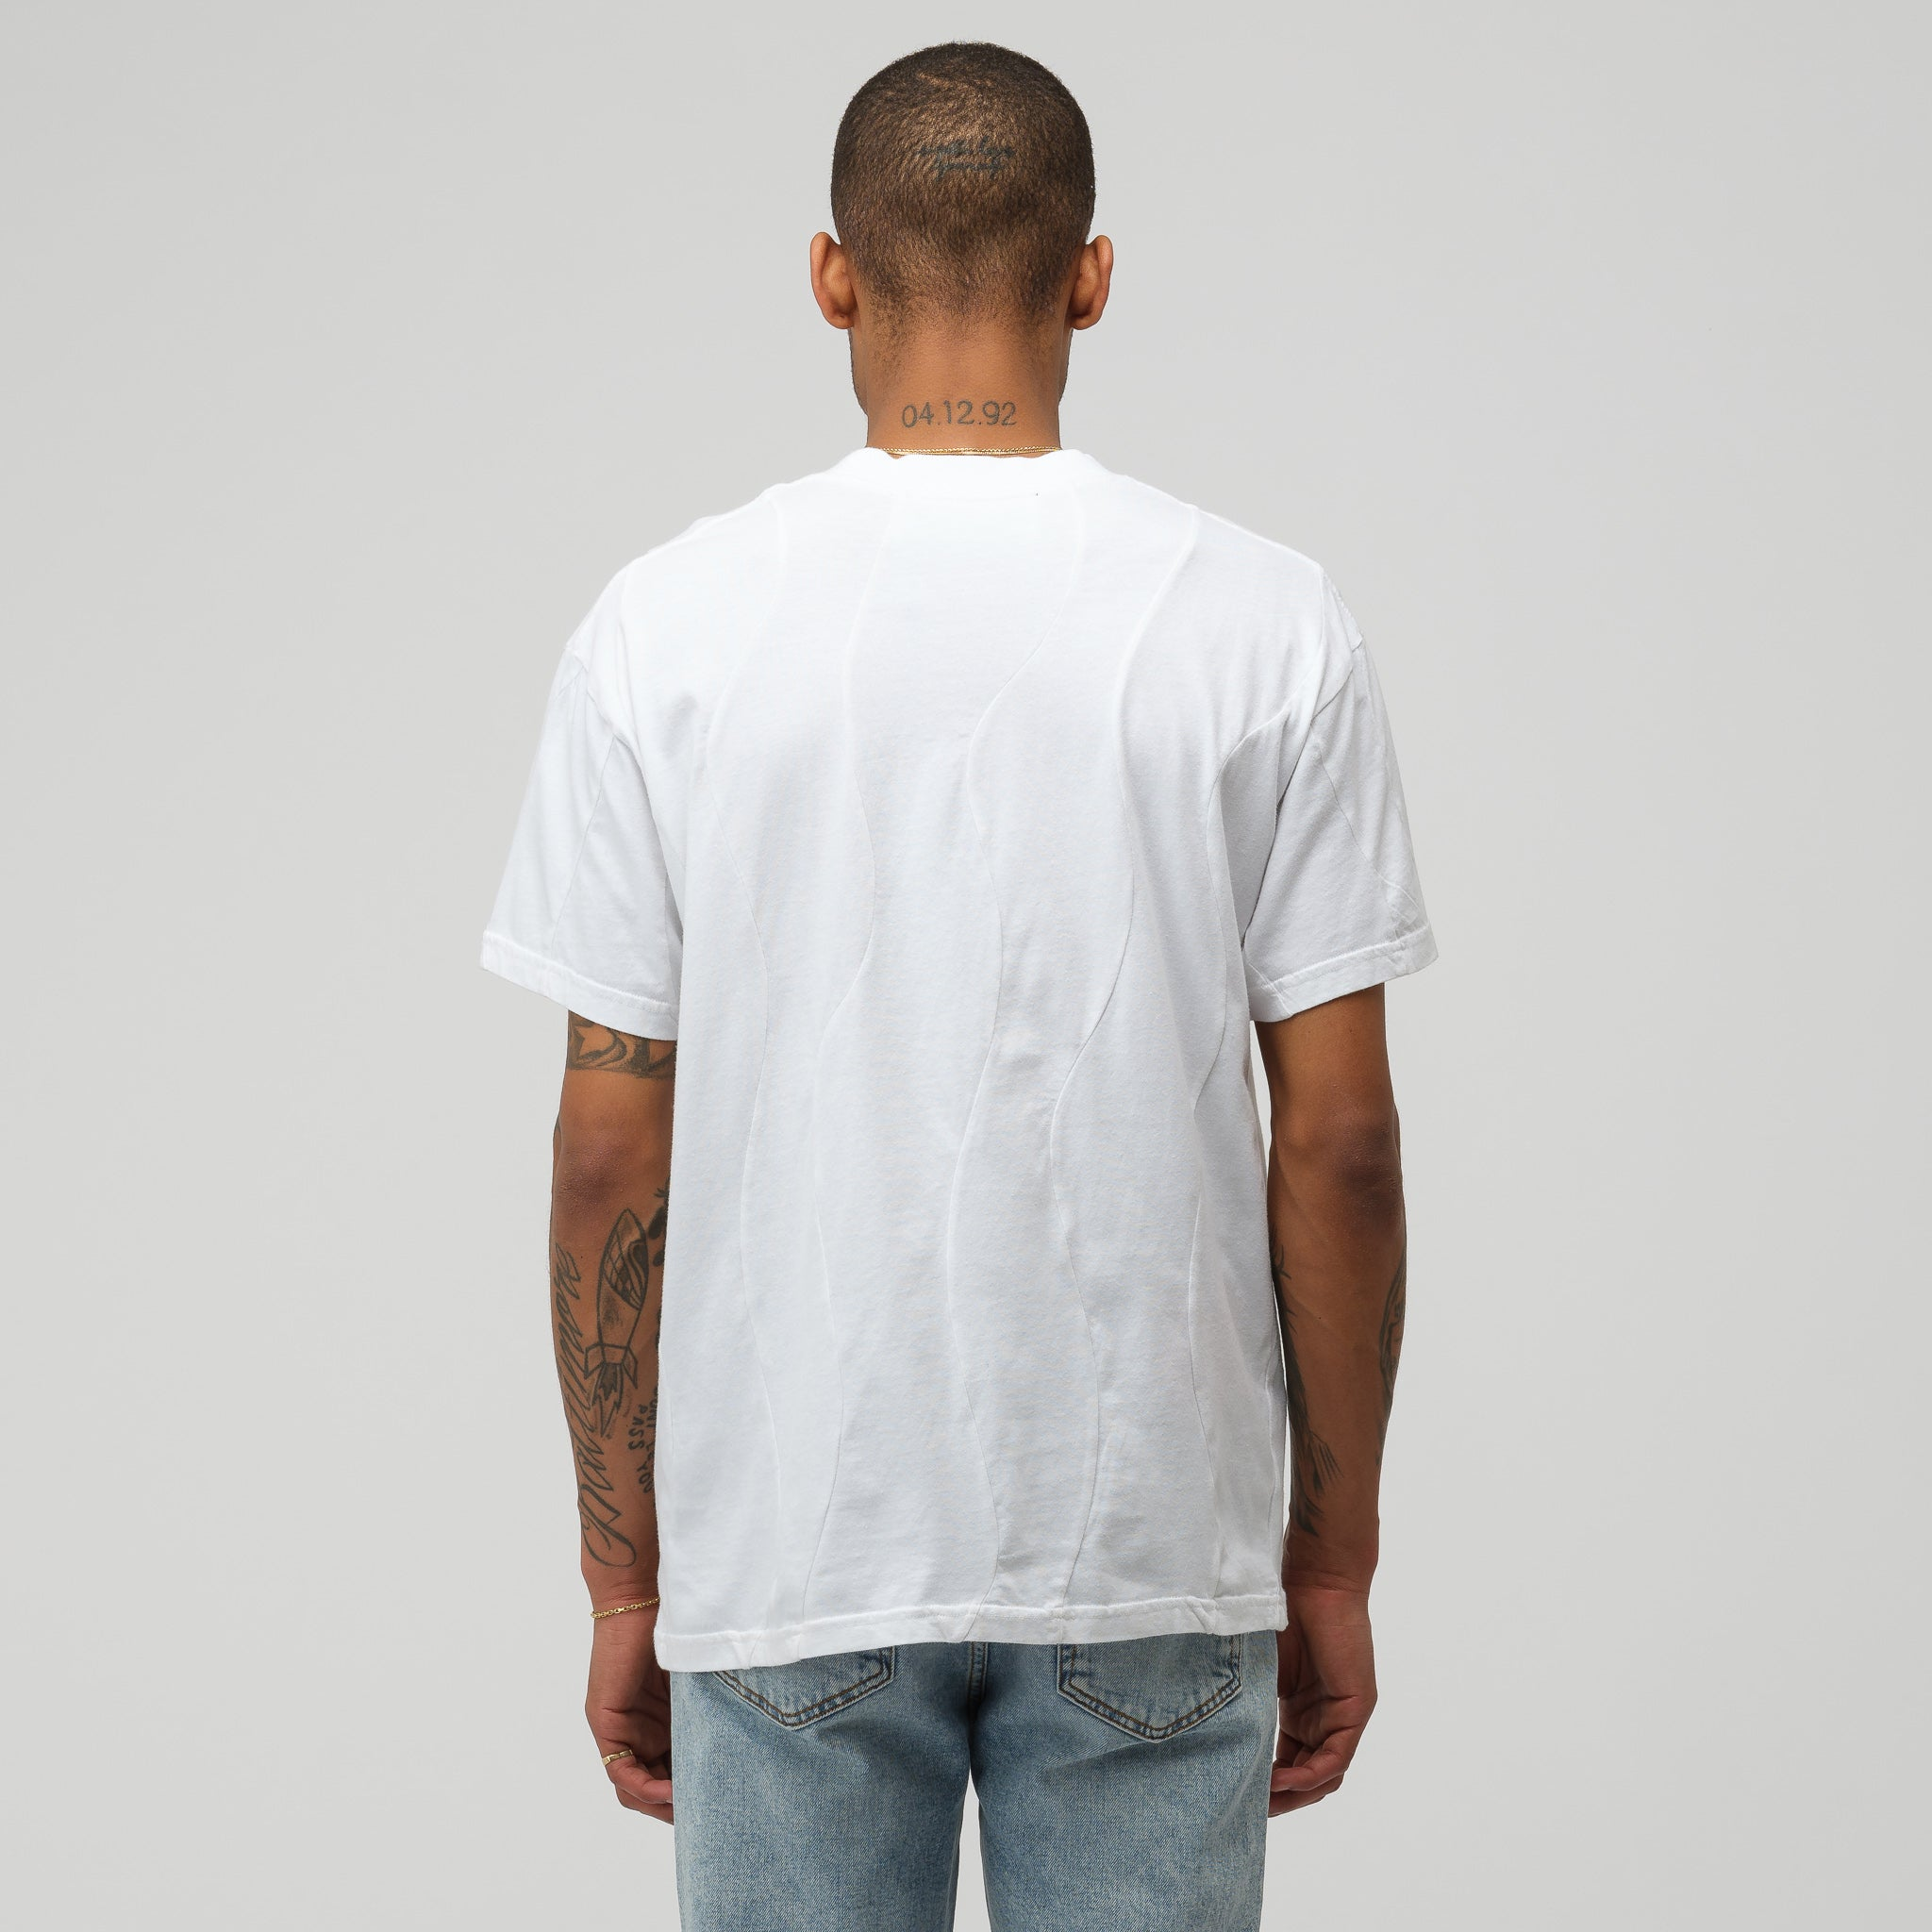 Wobbly T-Shirt in White